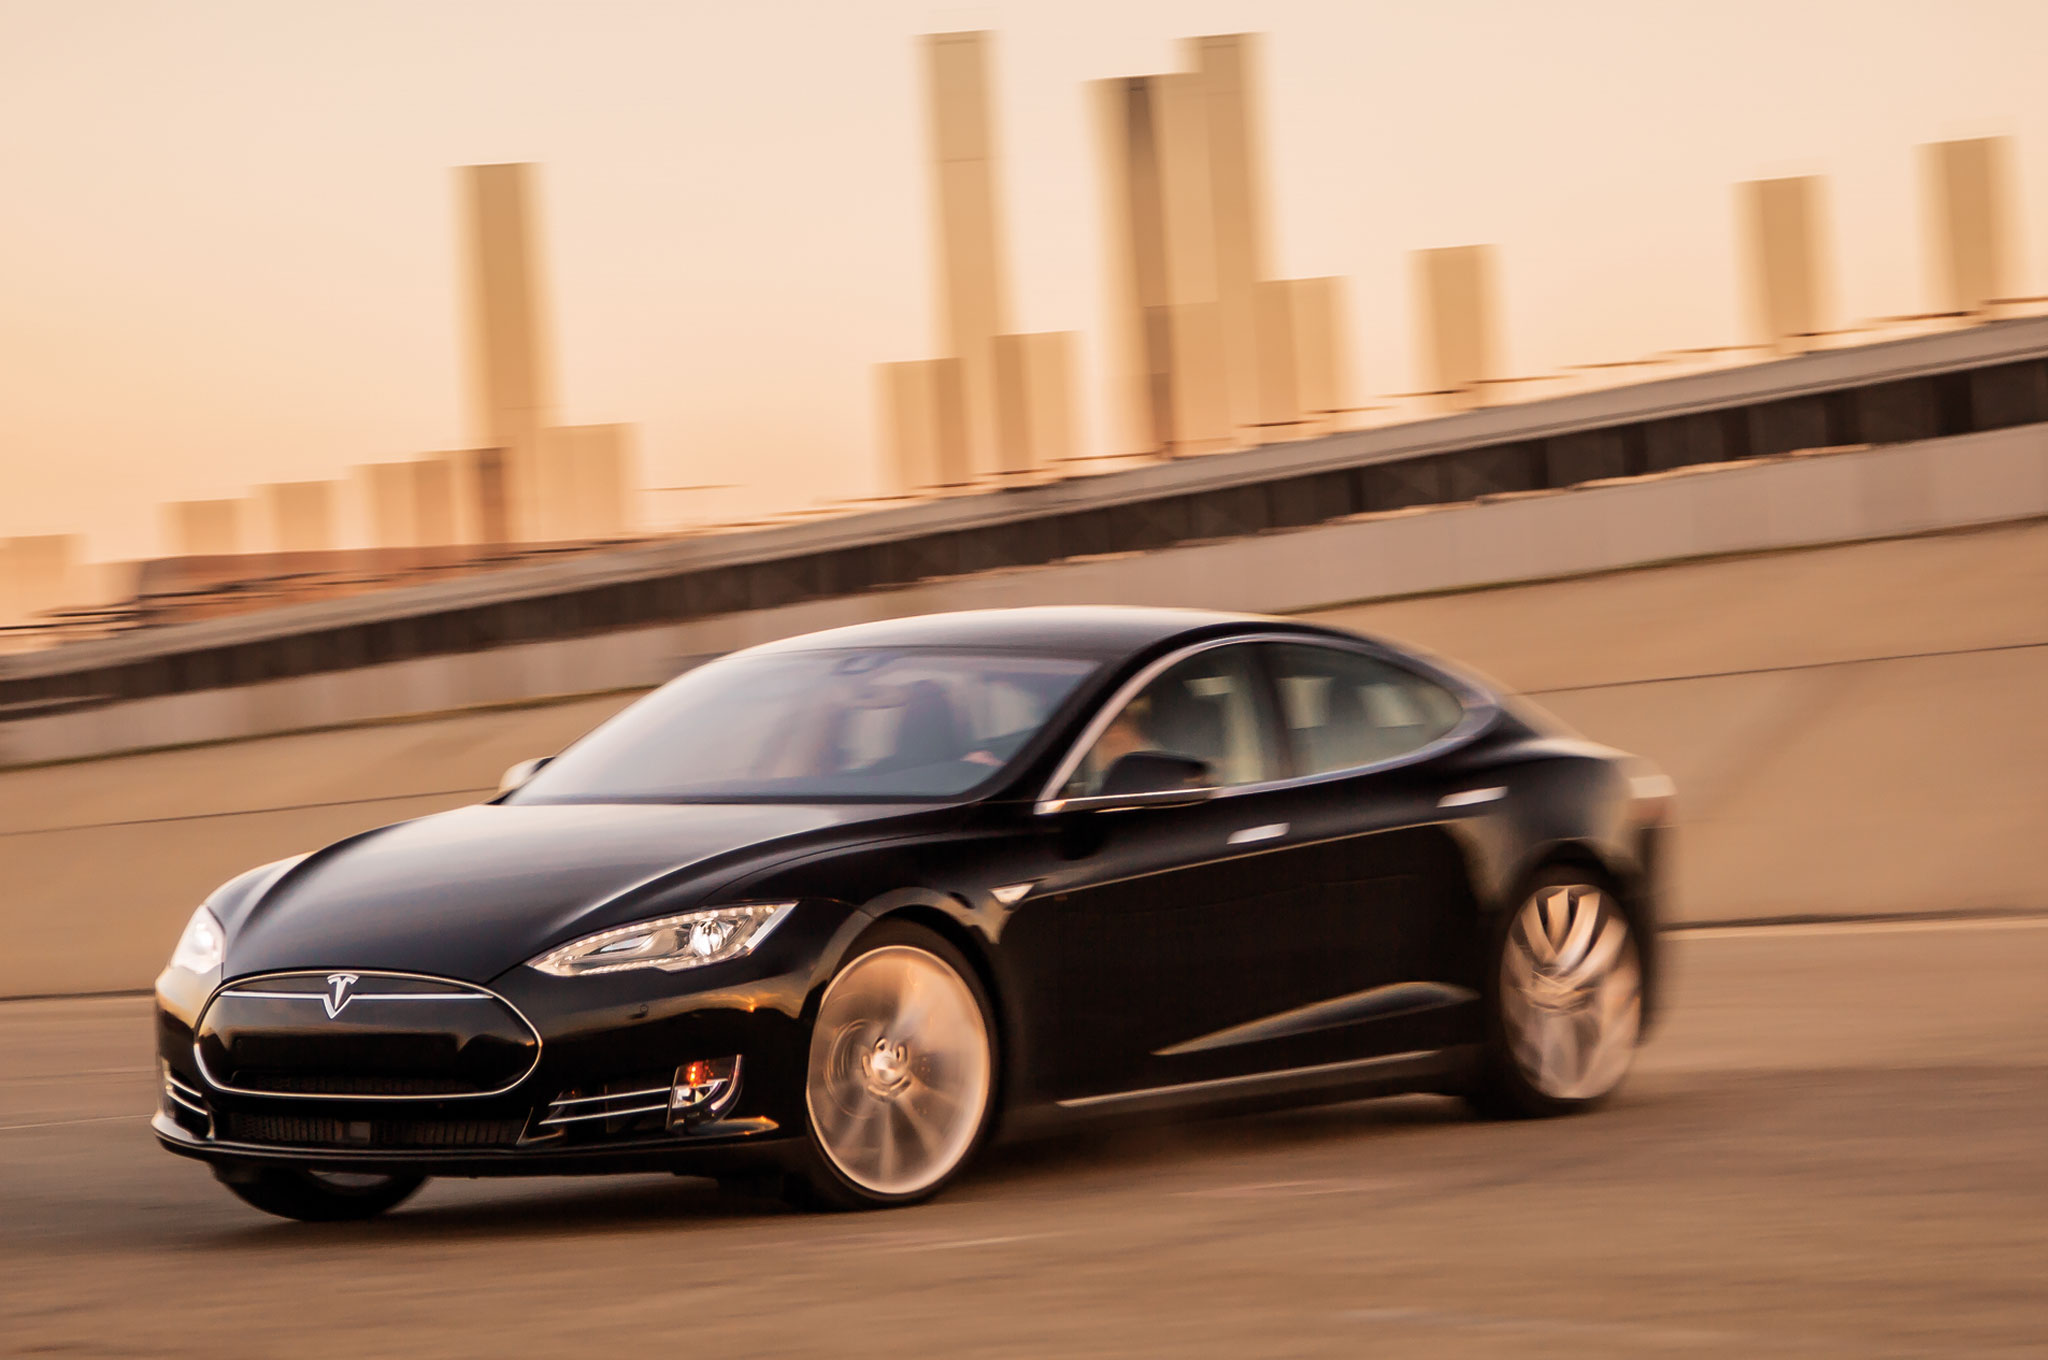 tesla model s wallpapers high quality | download free